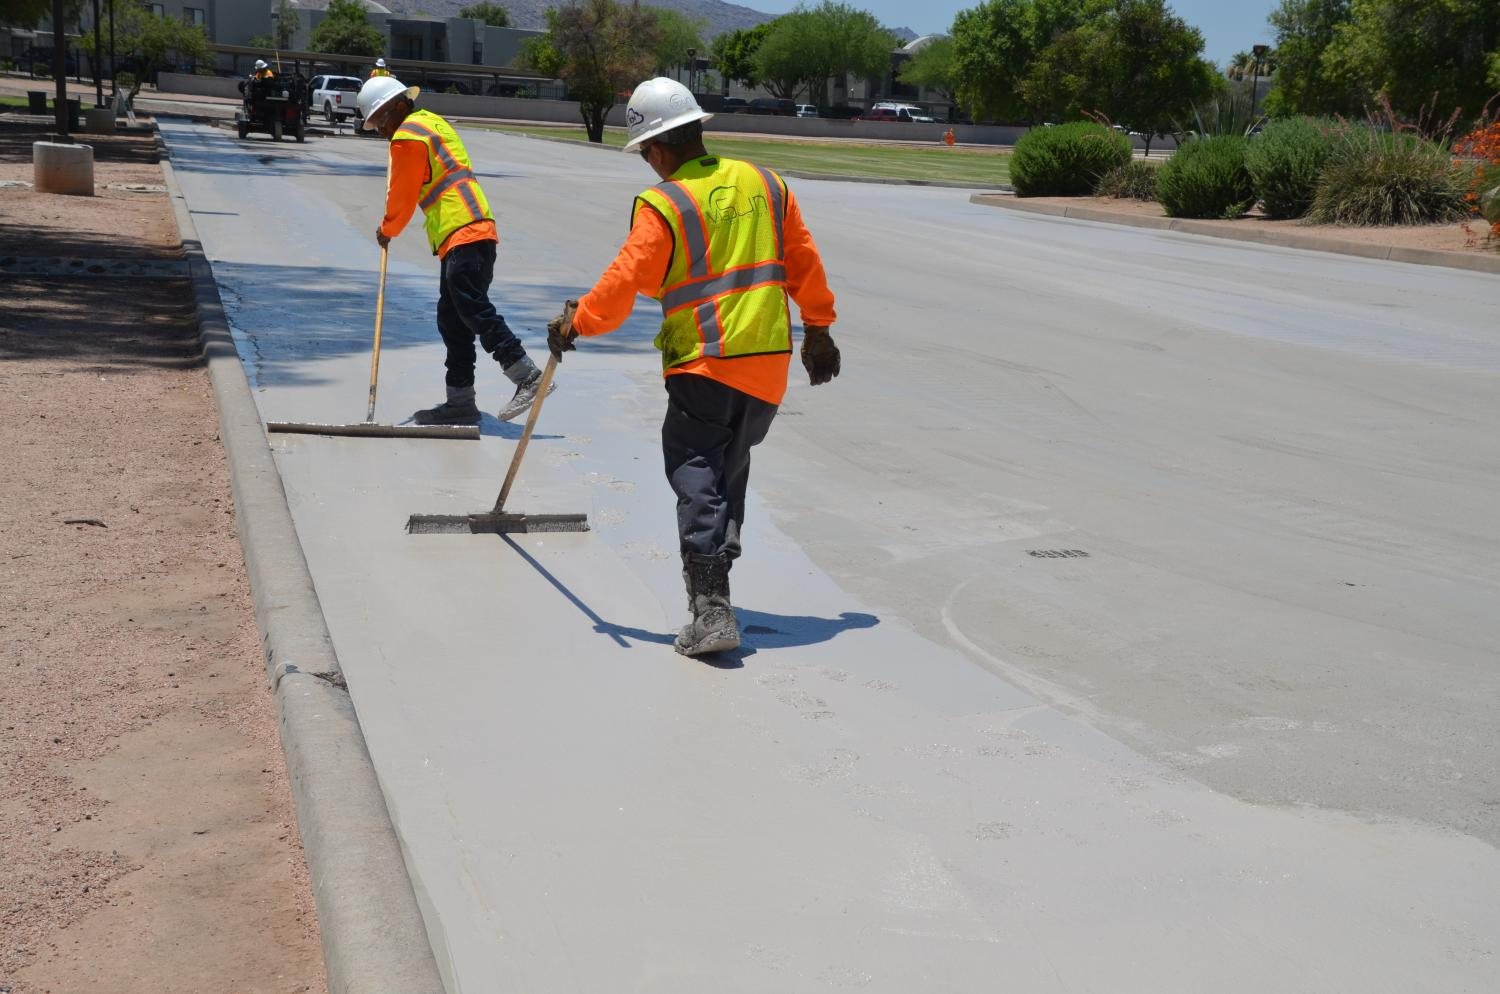 1 Year Later, Phoenix 'Cool Pavement' Researchers Find Temperature Drop